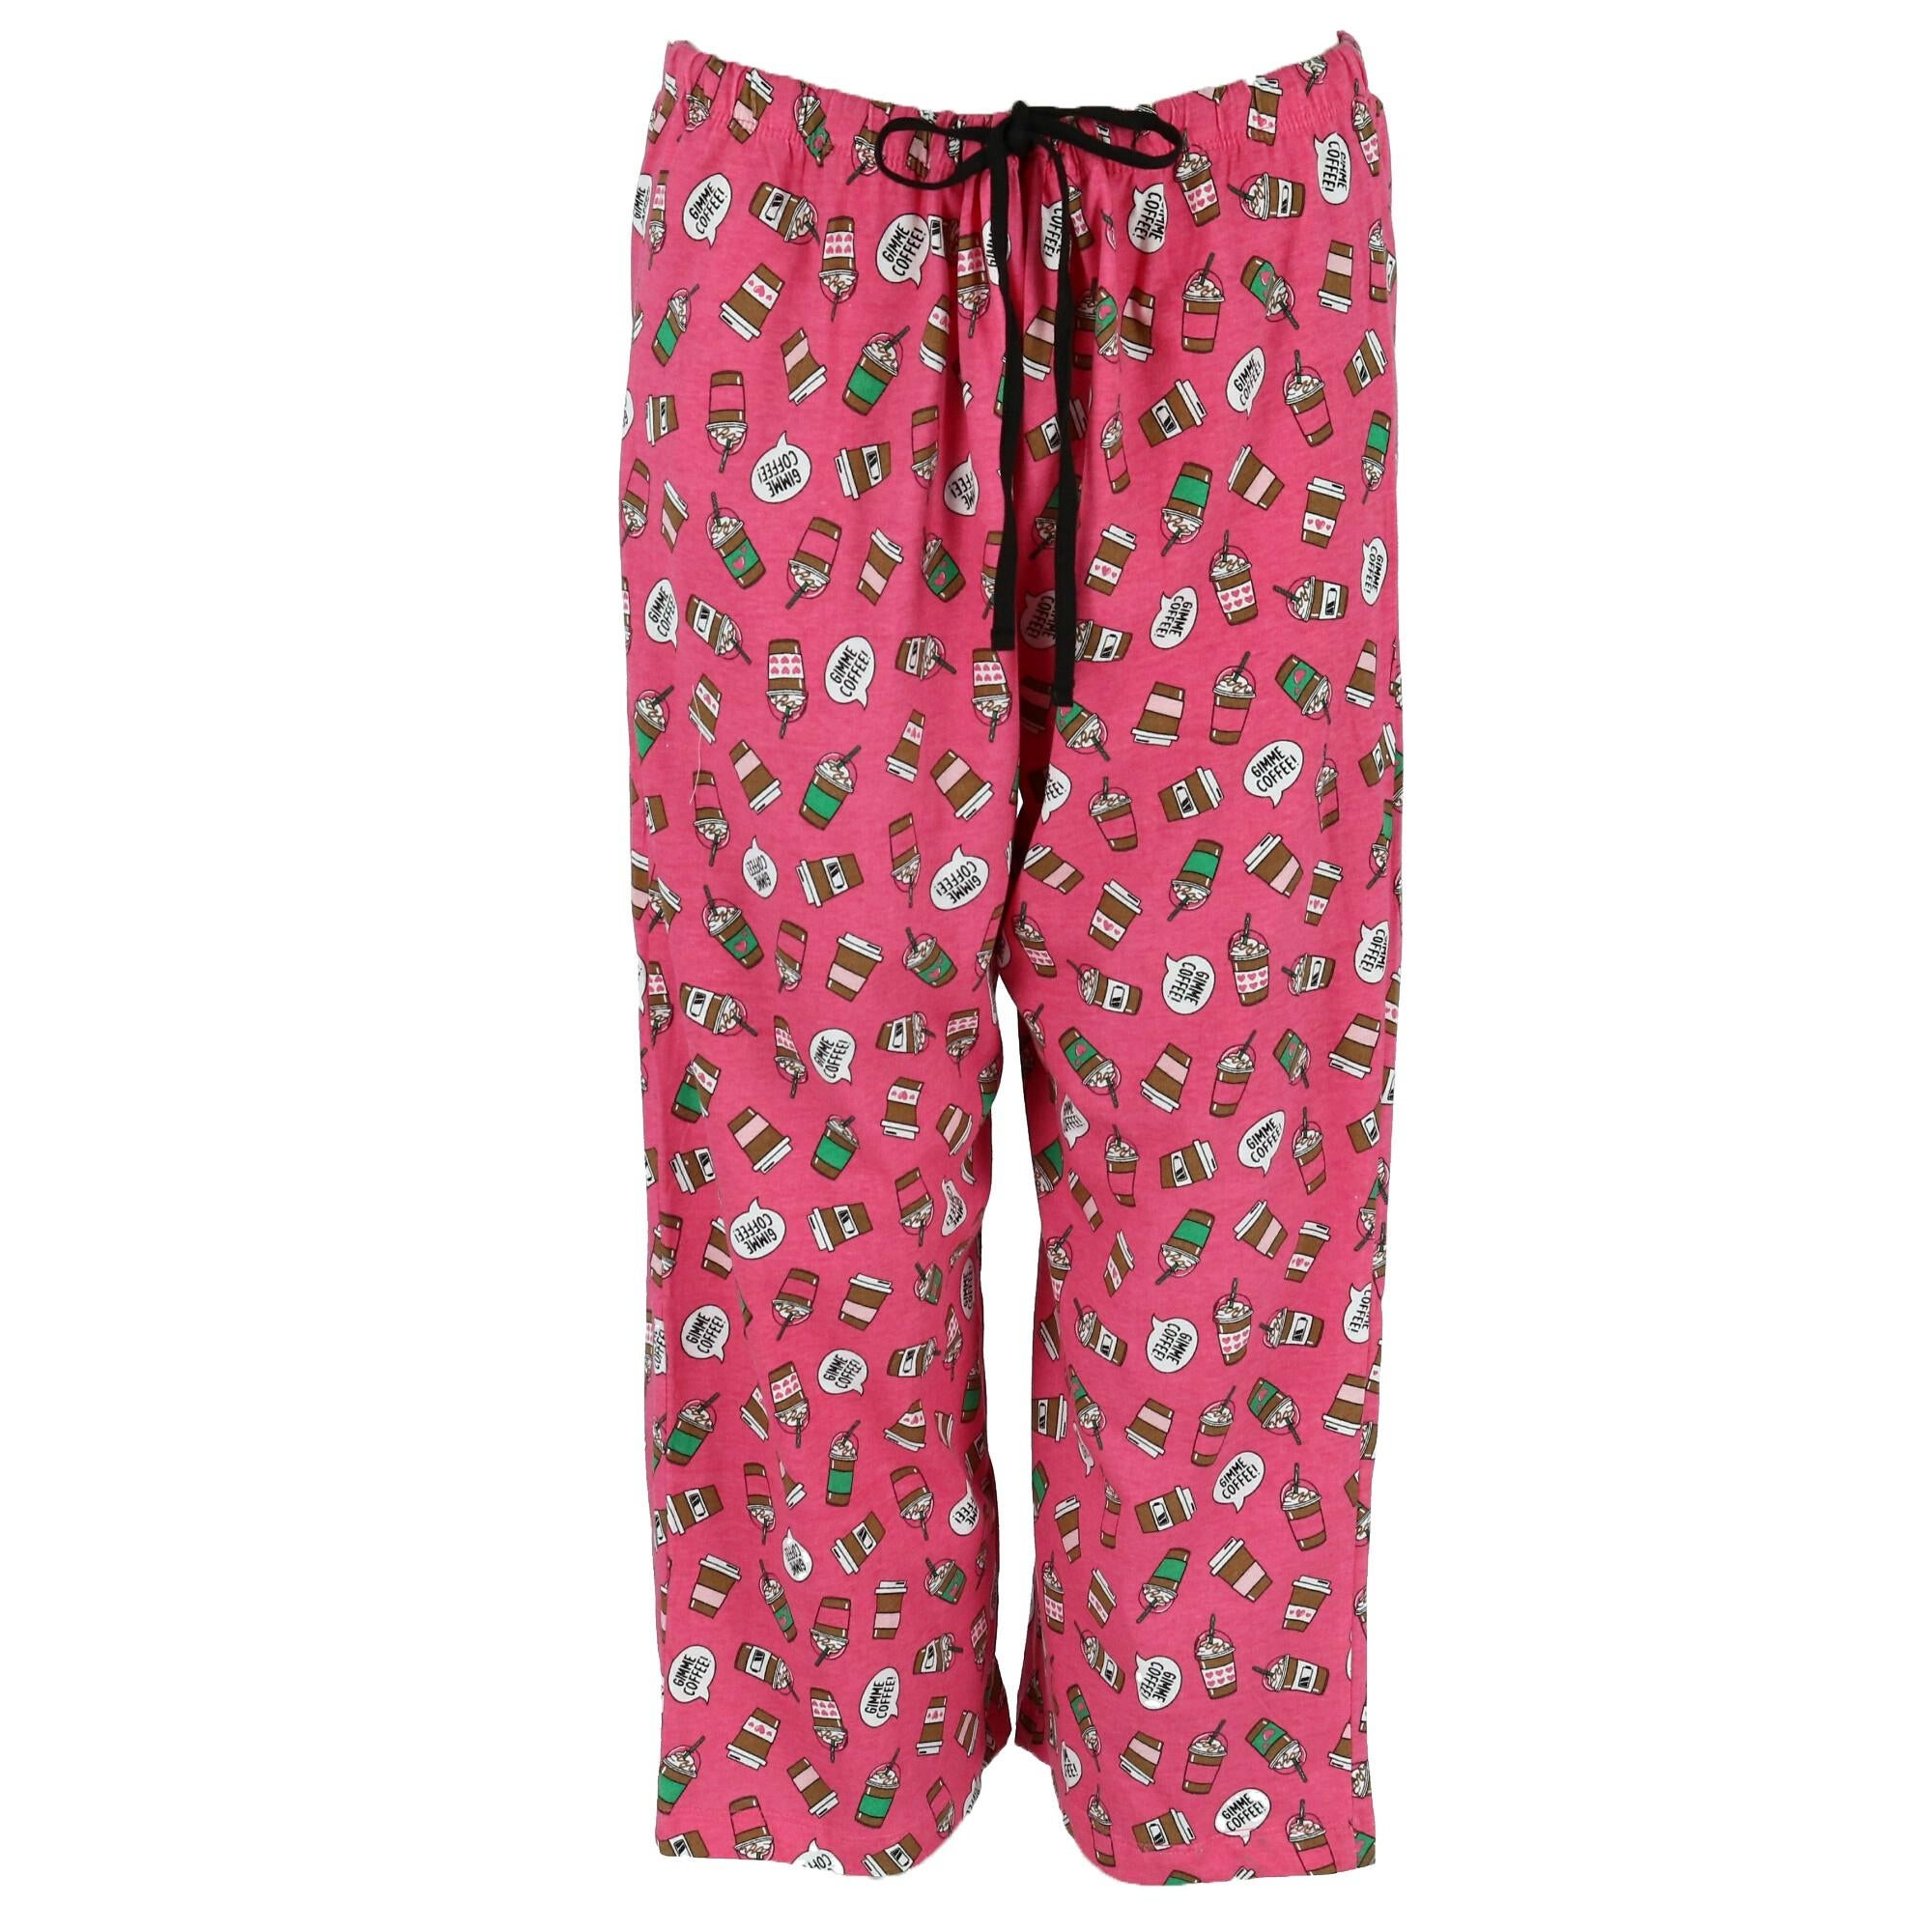 571f798f263a Shop Rene Rofe Women's Plus Size Conversational Capri Pajama Set - Free  Shipping On Orders Over $45 - Overstock - 26438040